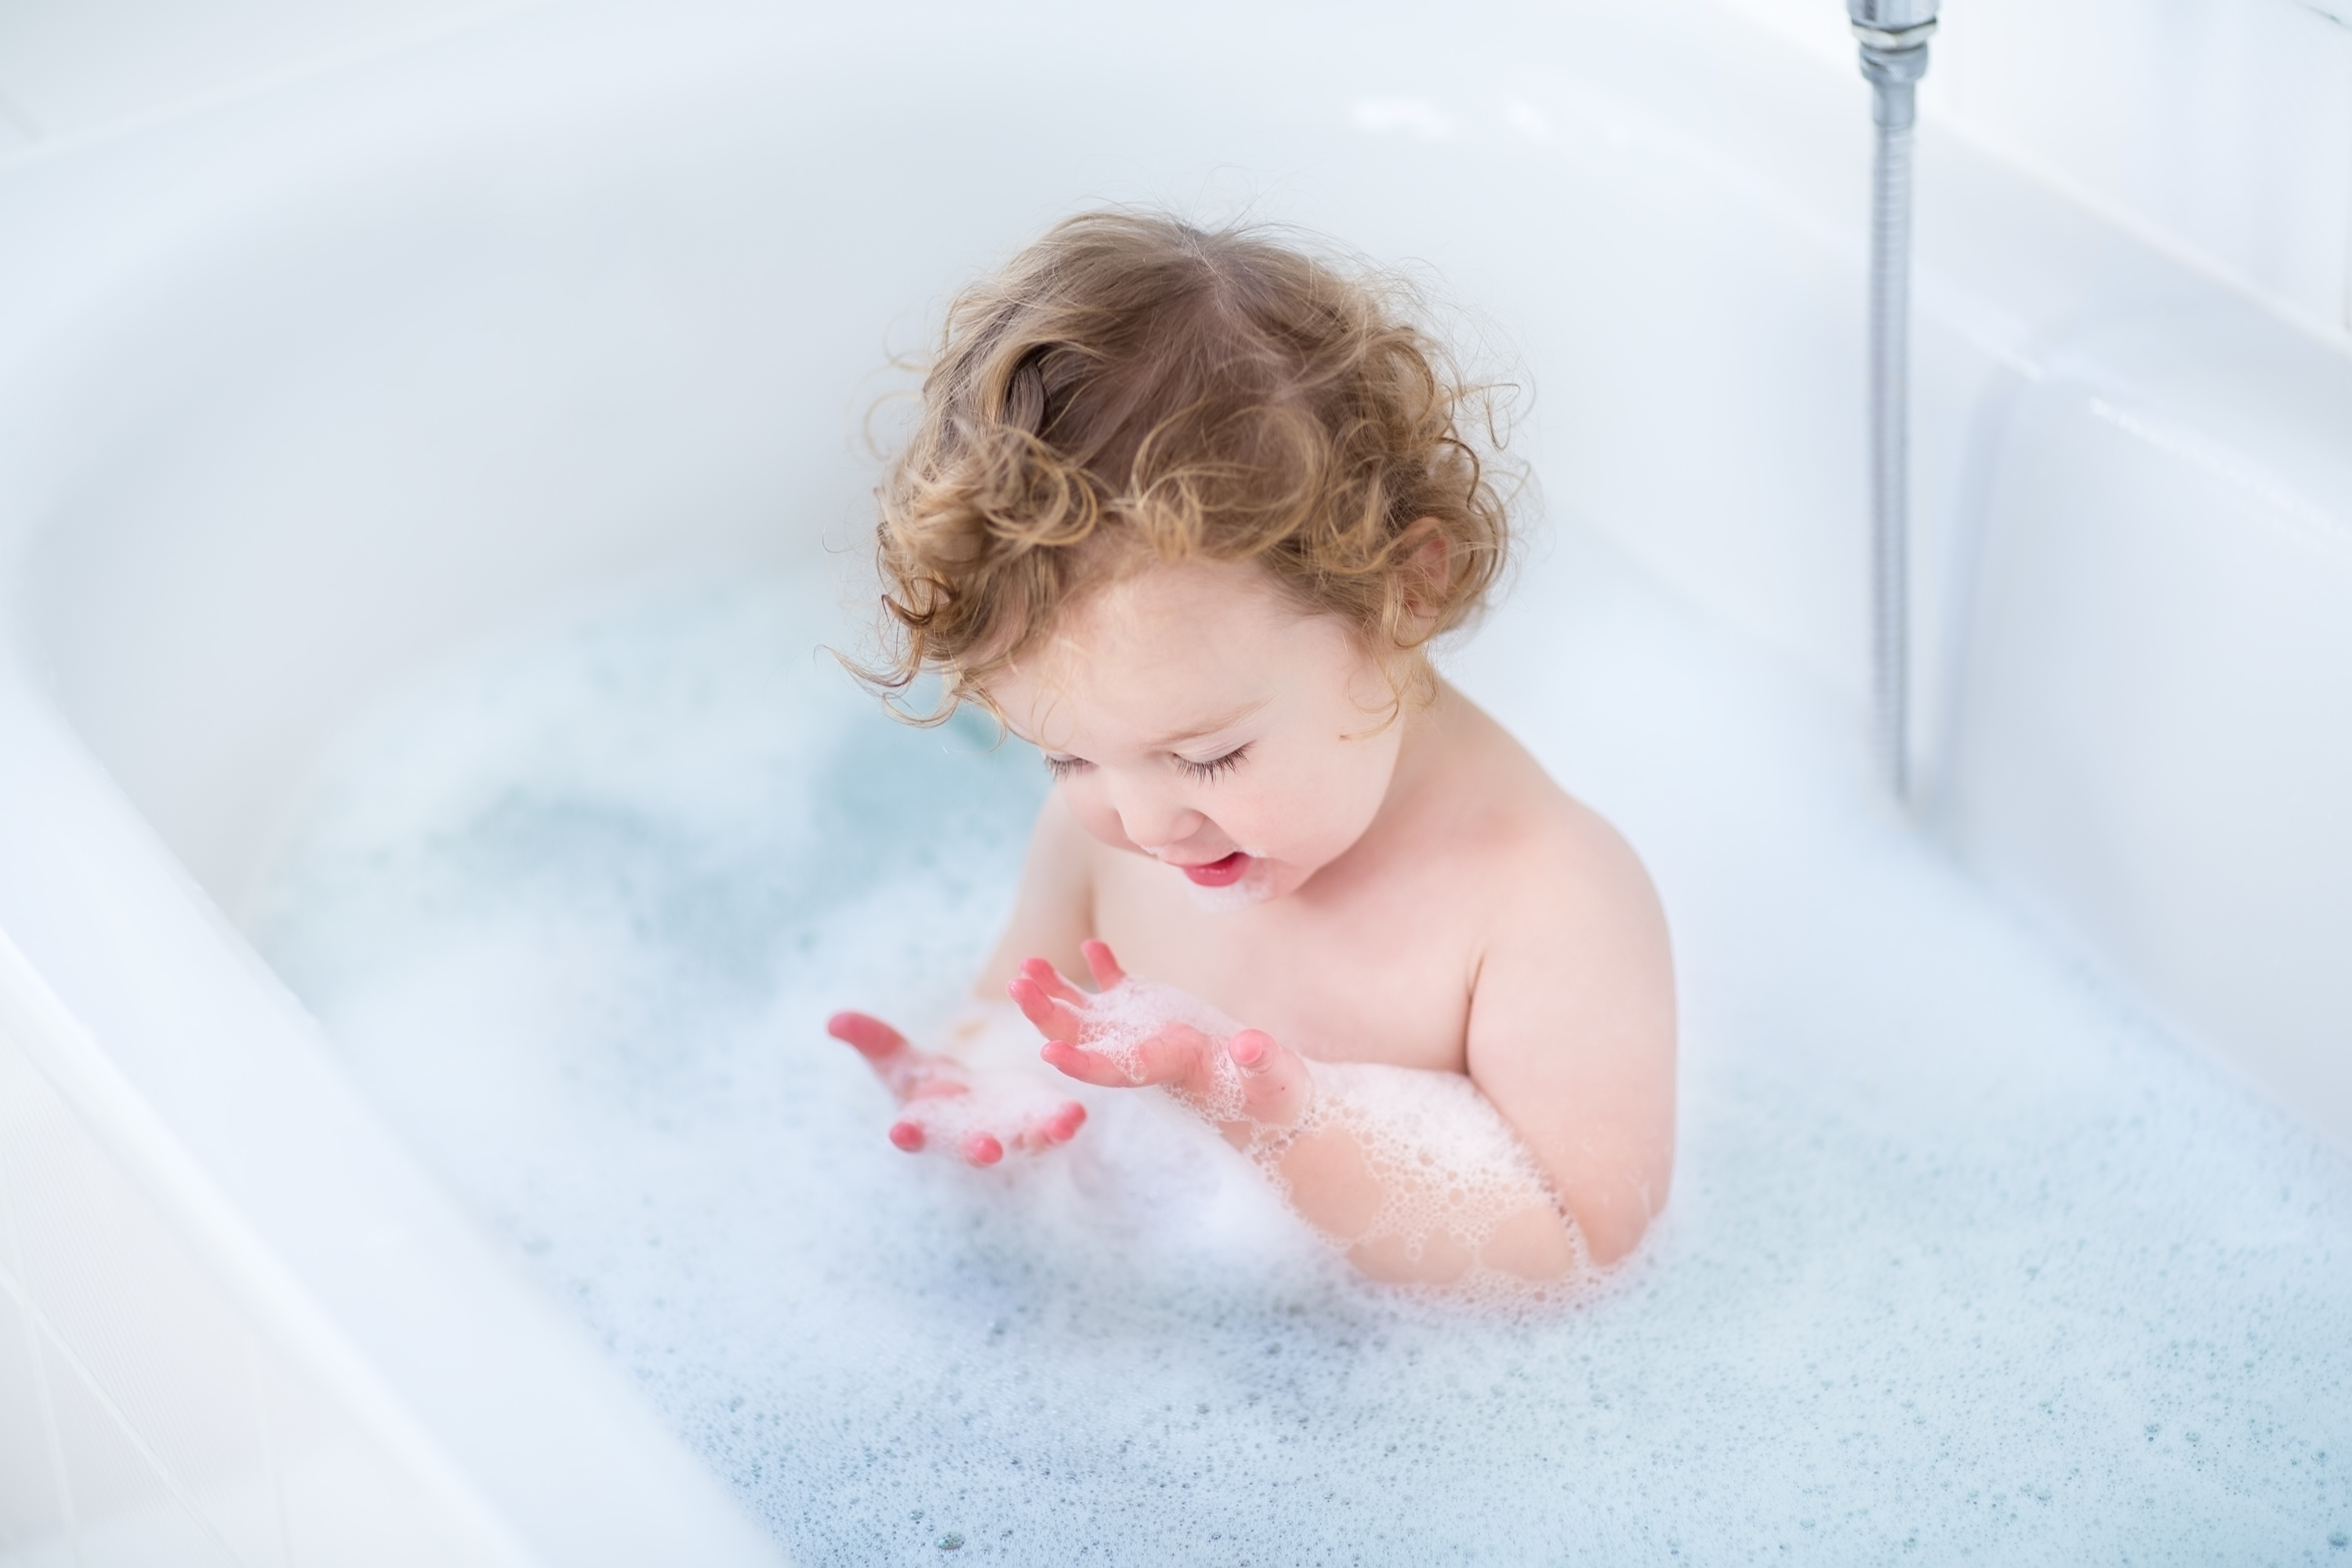 Soap may be causing food allergies in babies